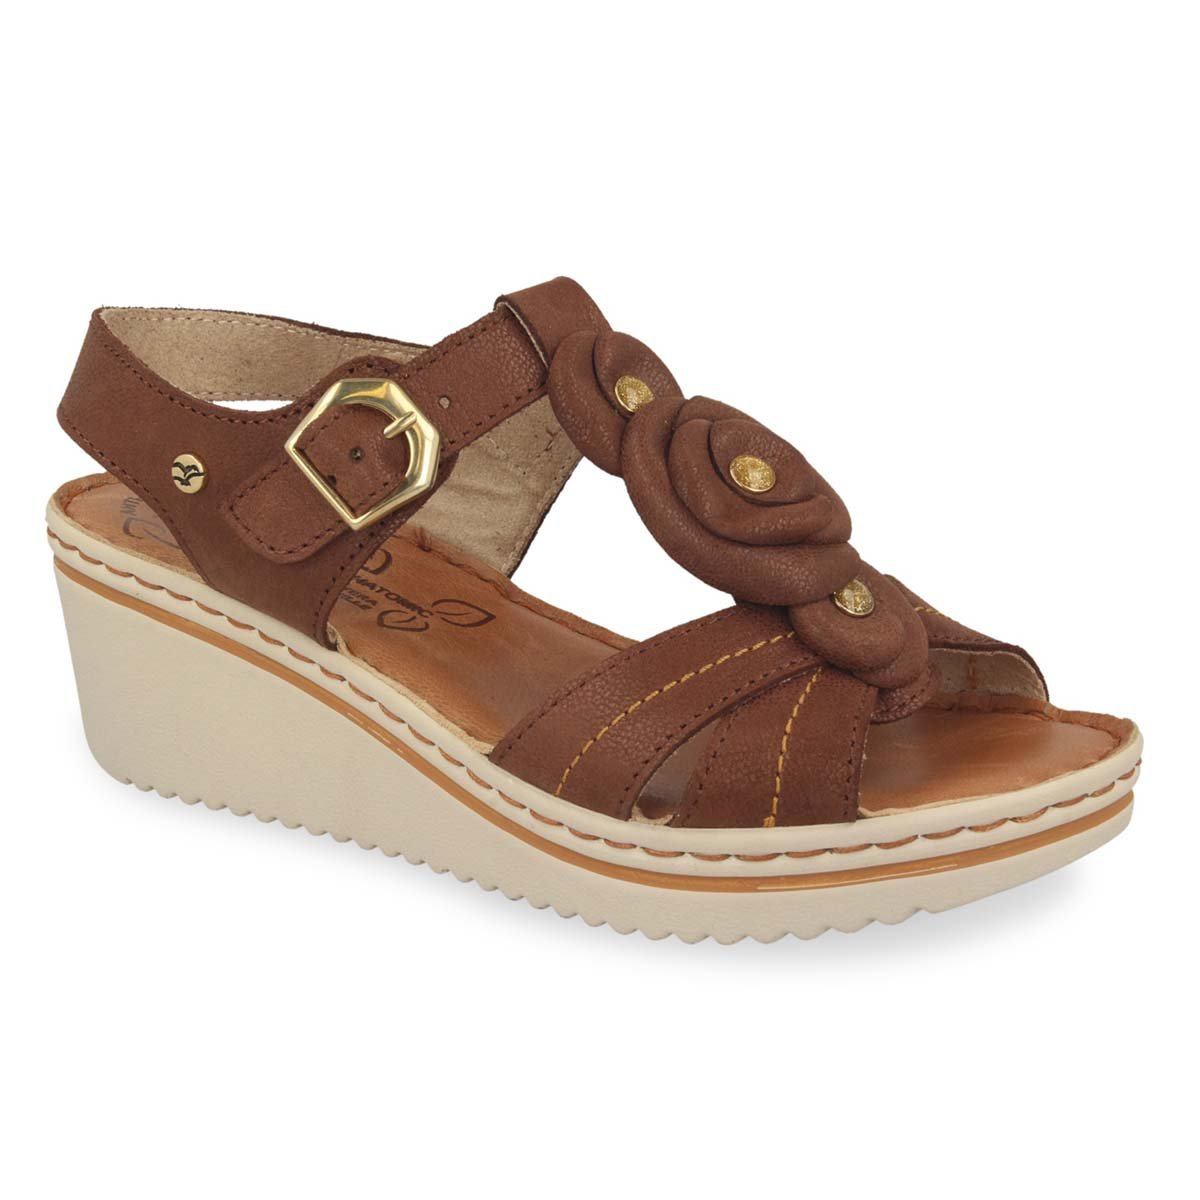 Photo of the Leather Woman Sandal Brown (41e54bg)